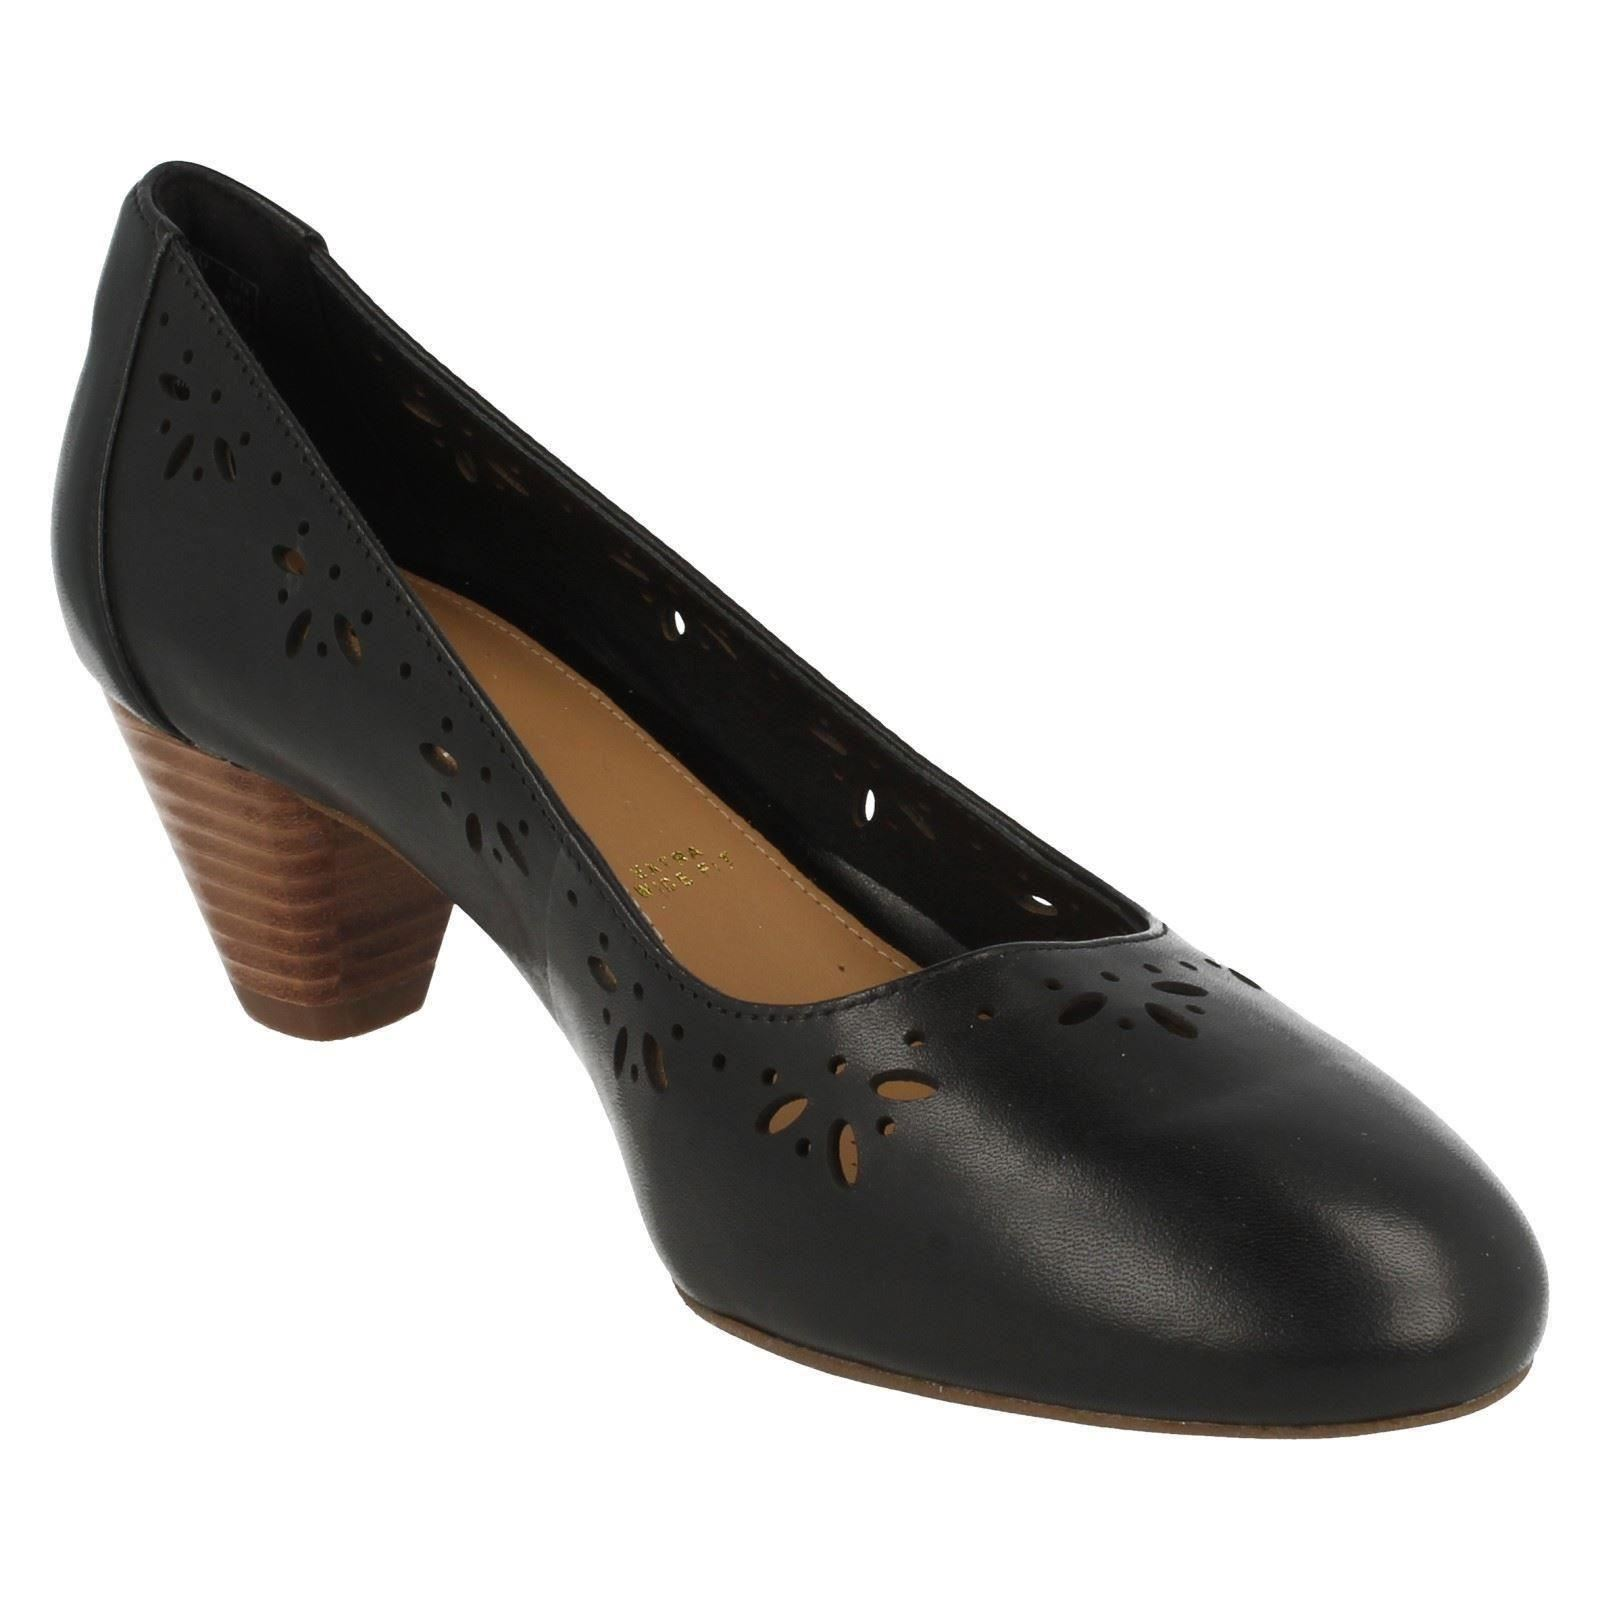 Clarks Extra Wide Ladies Shoes